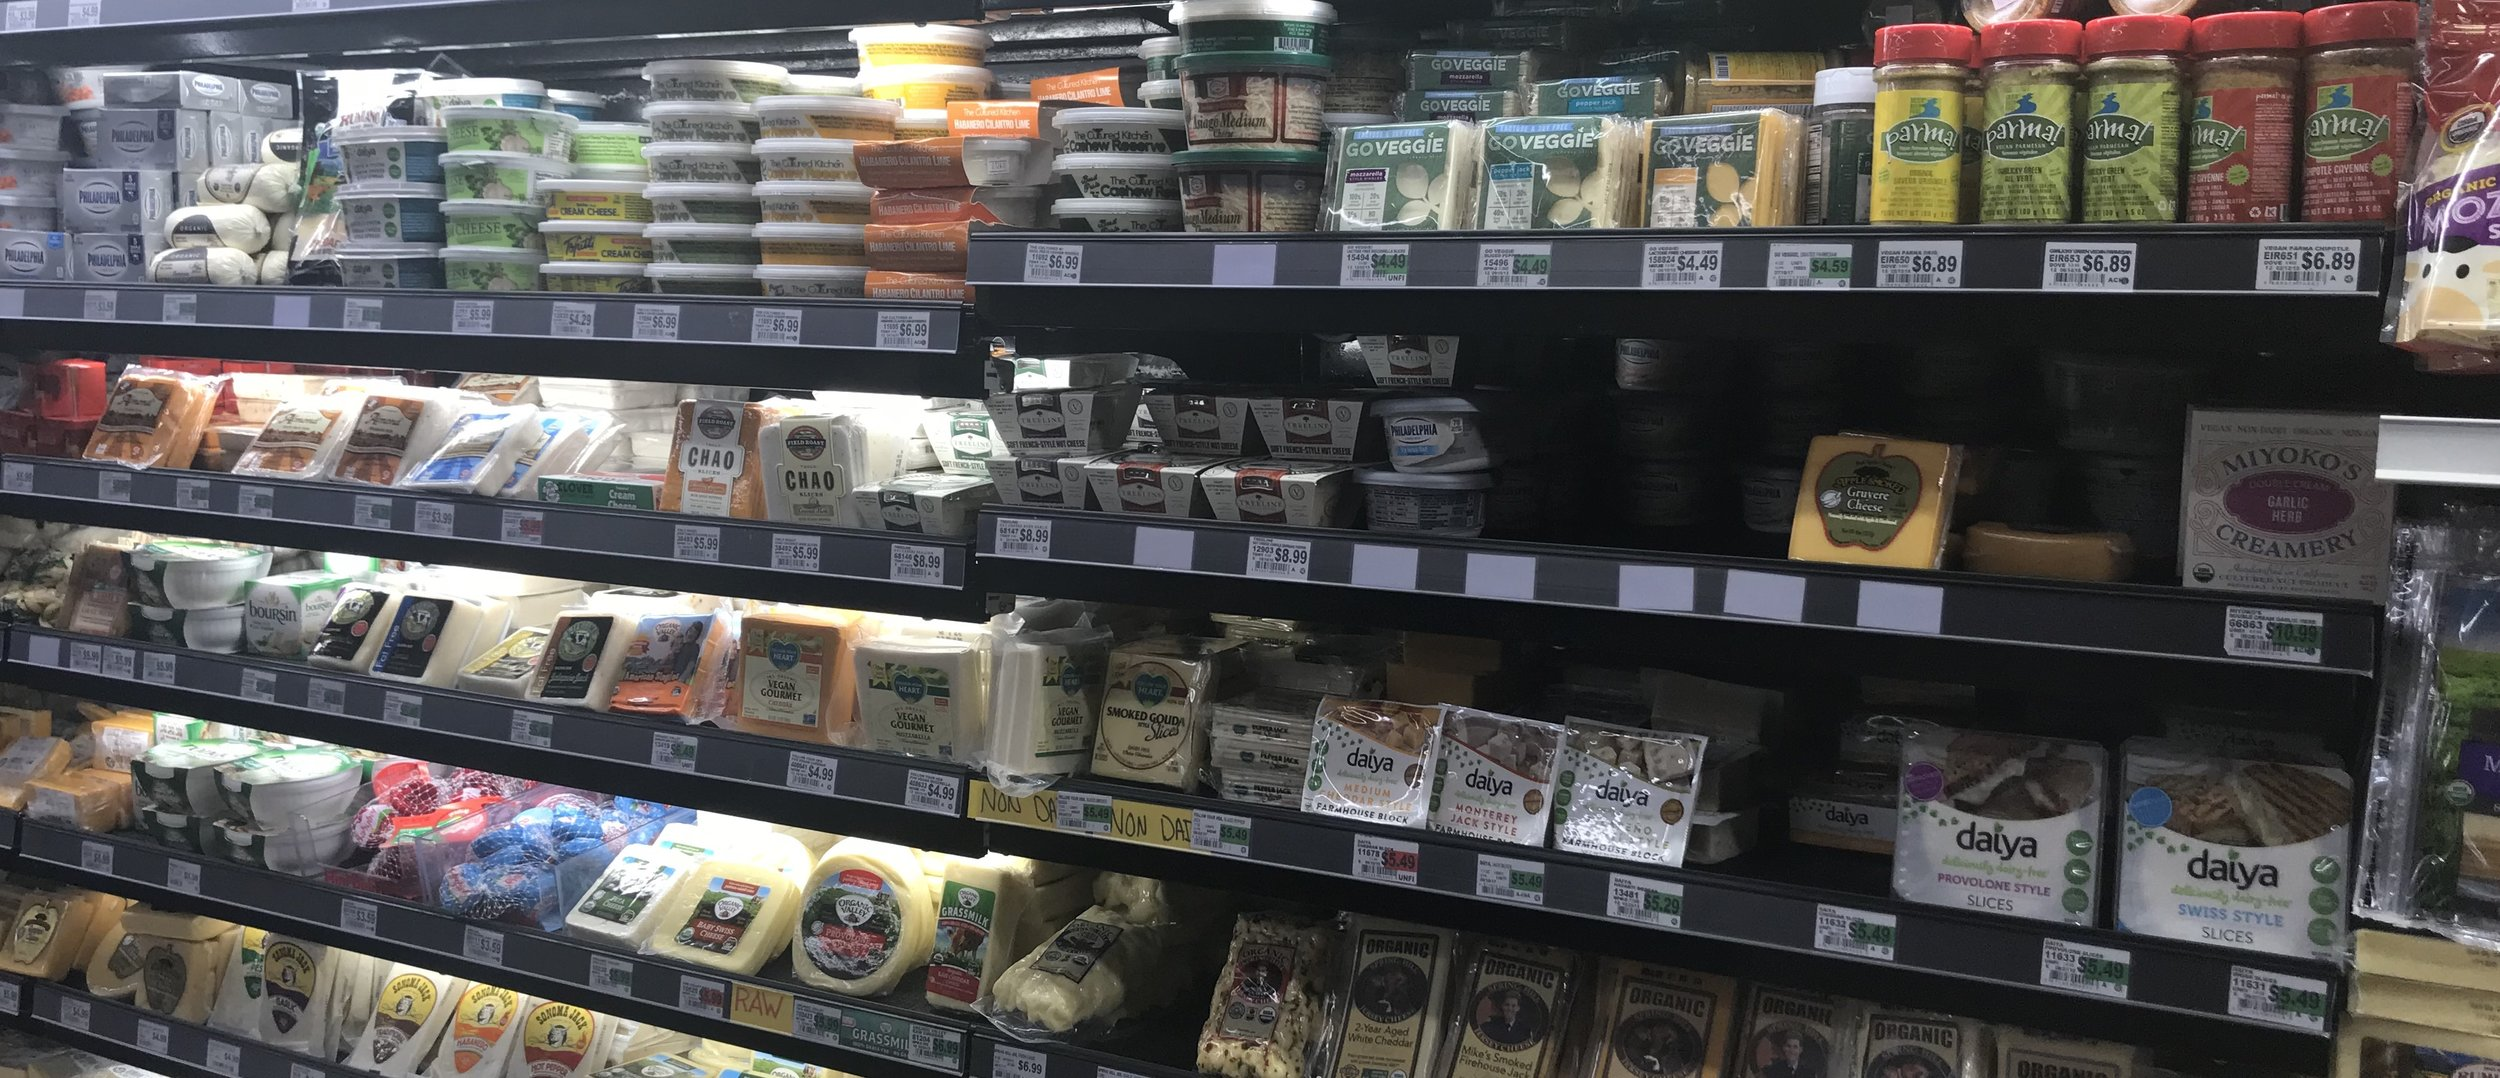 The extensive plant-based cheese selection at local grocery store Berkeley Bowl.